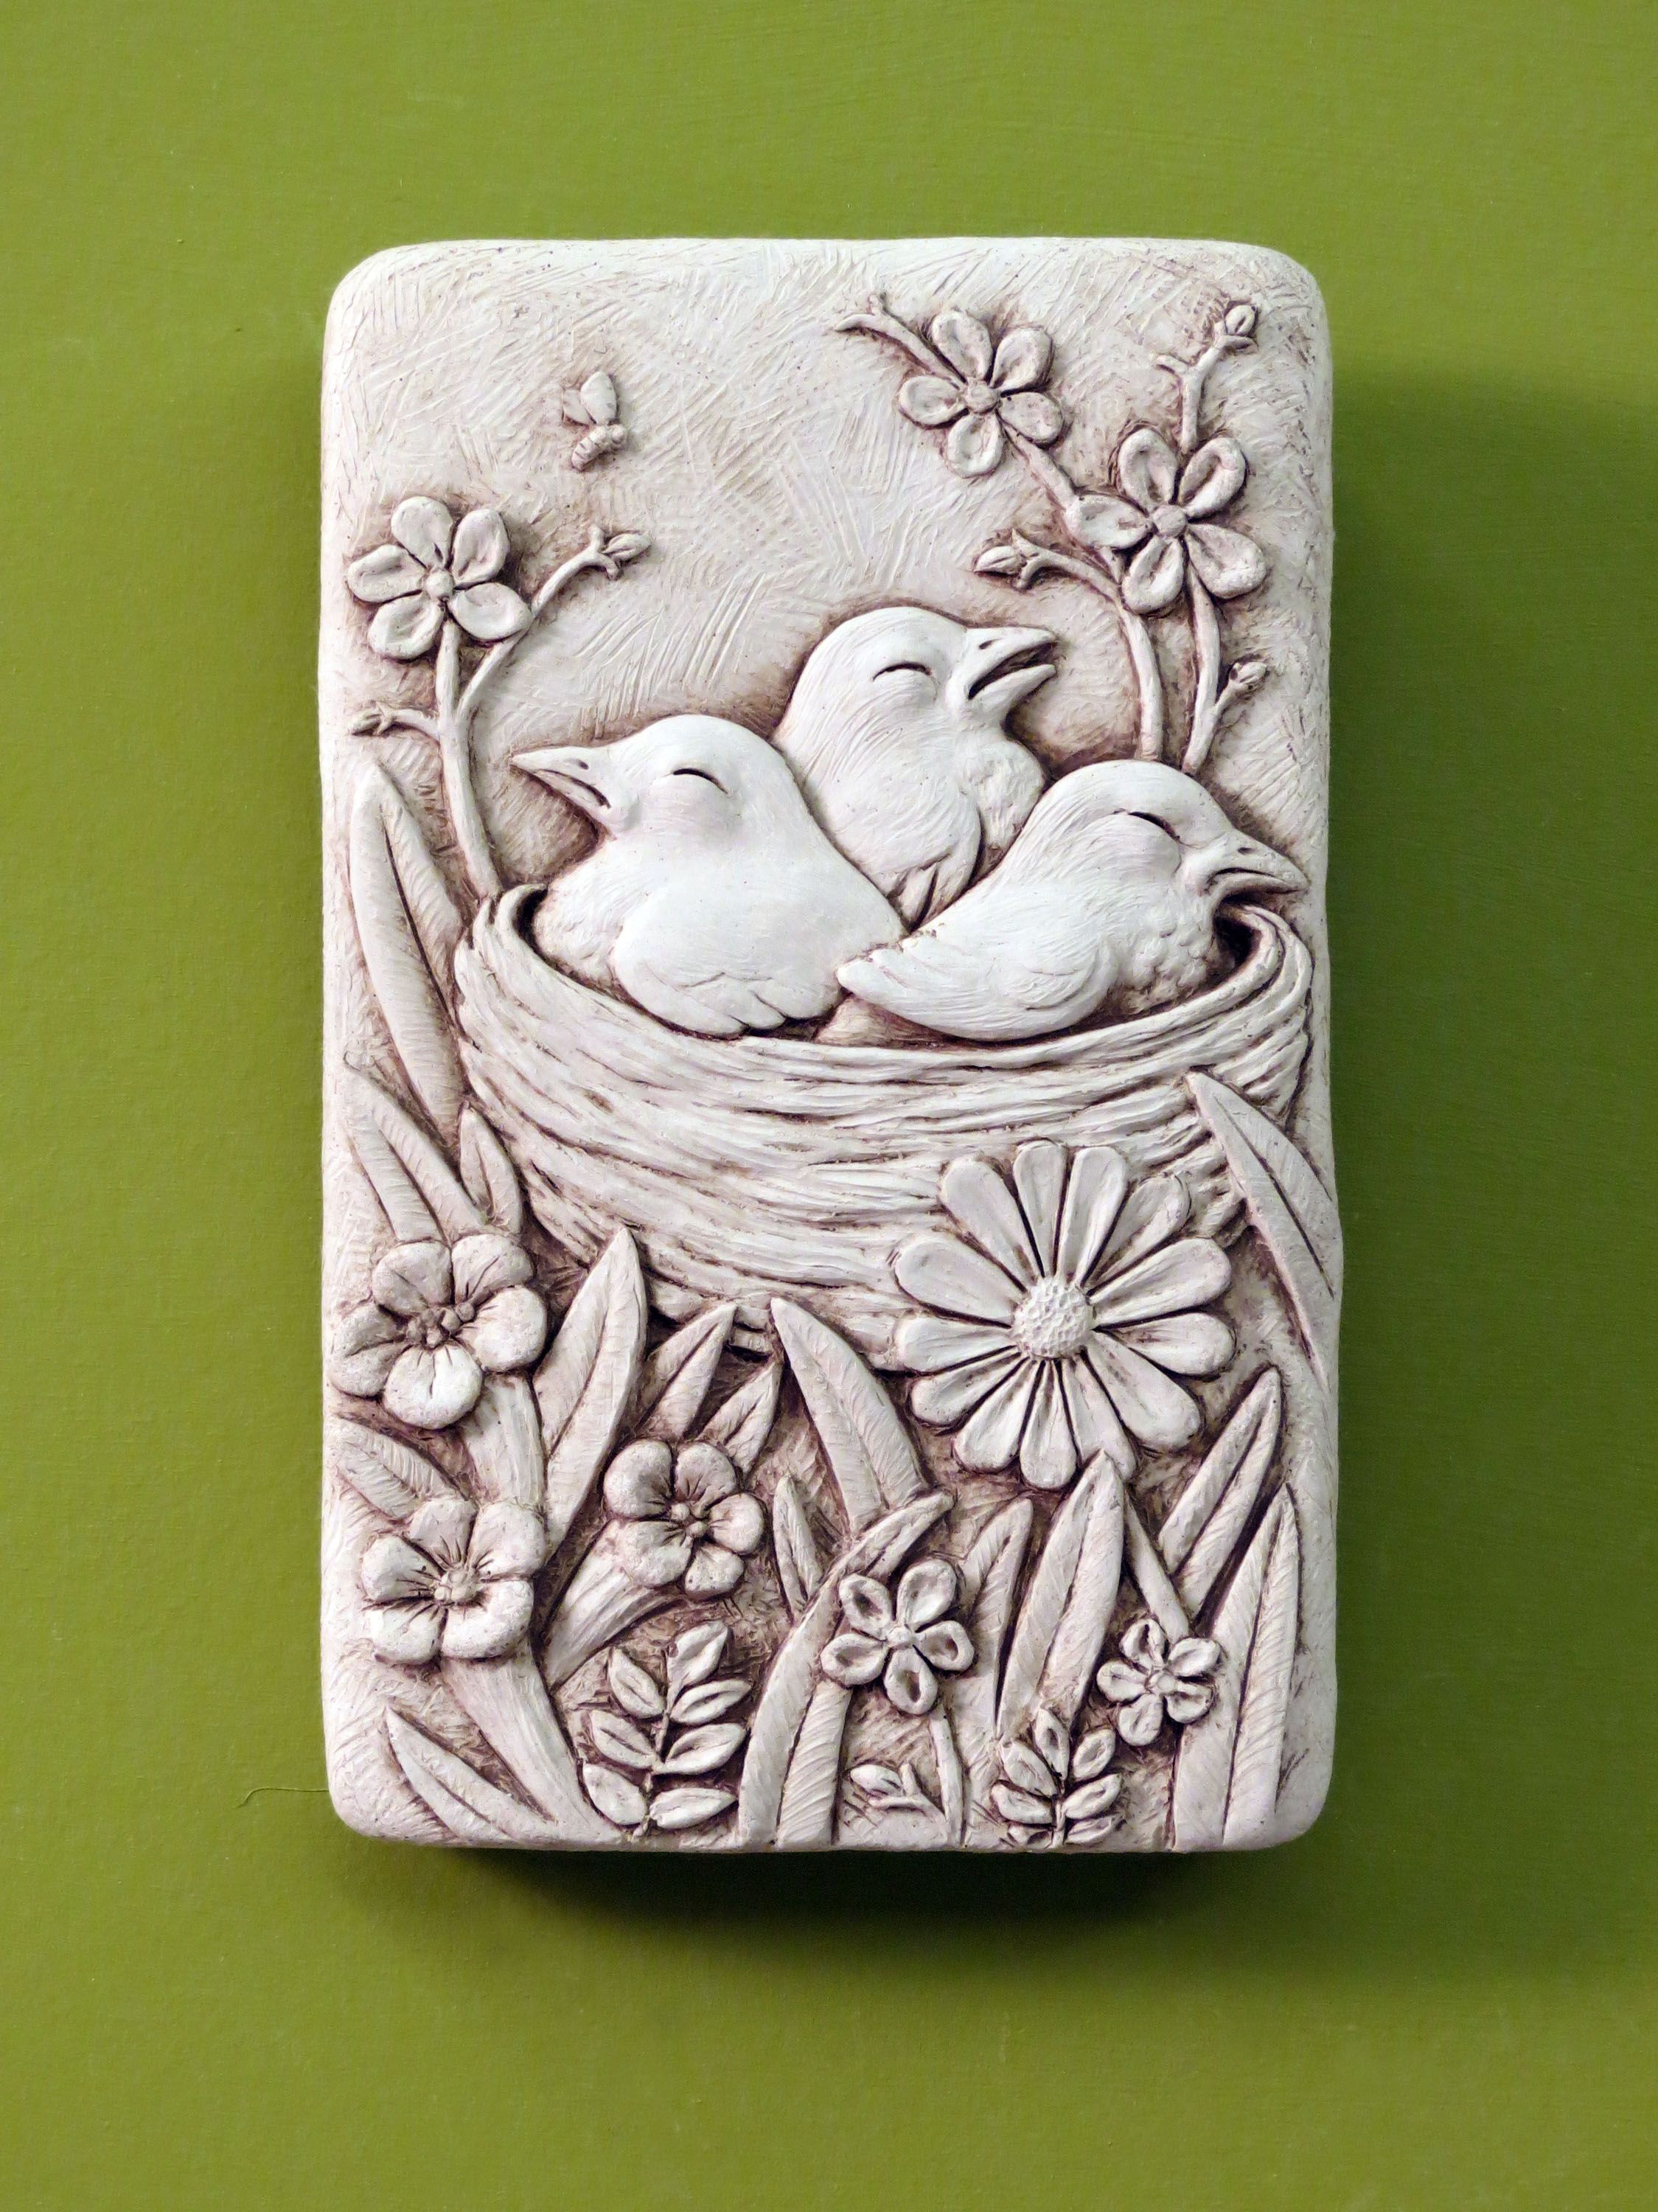 1279 cozy nest carruth nest birds gift plaque for Plaque recouvrement mural